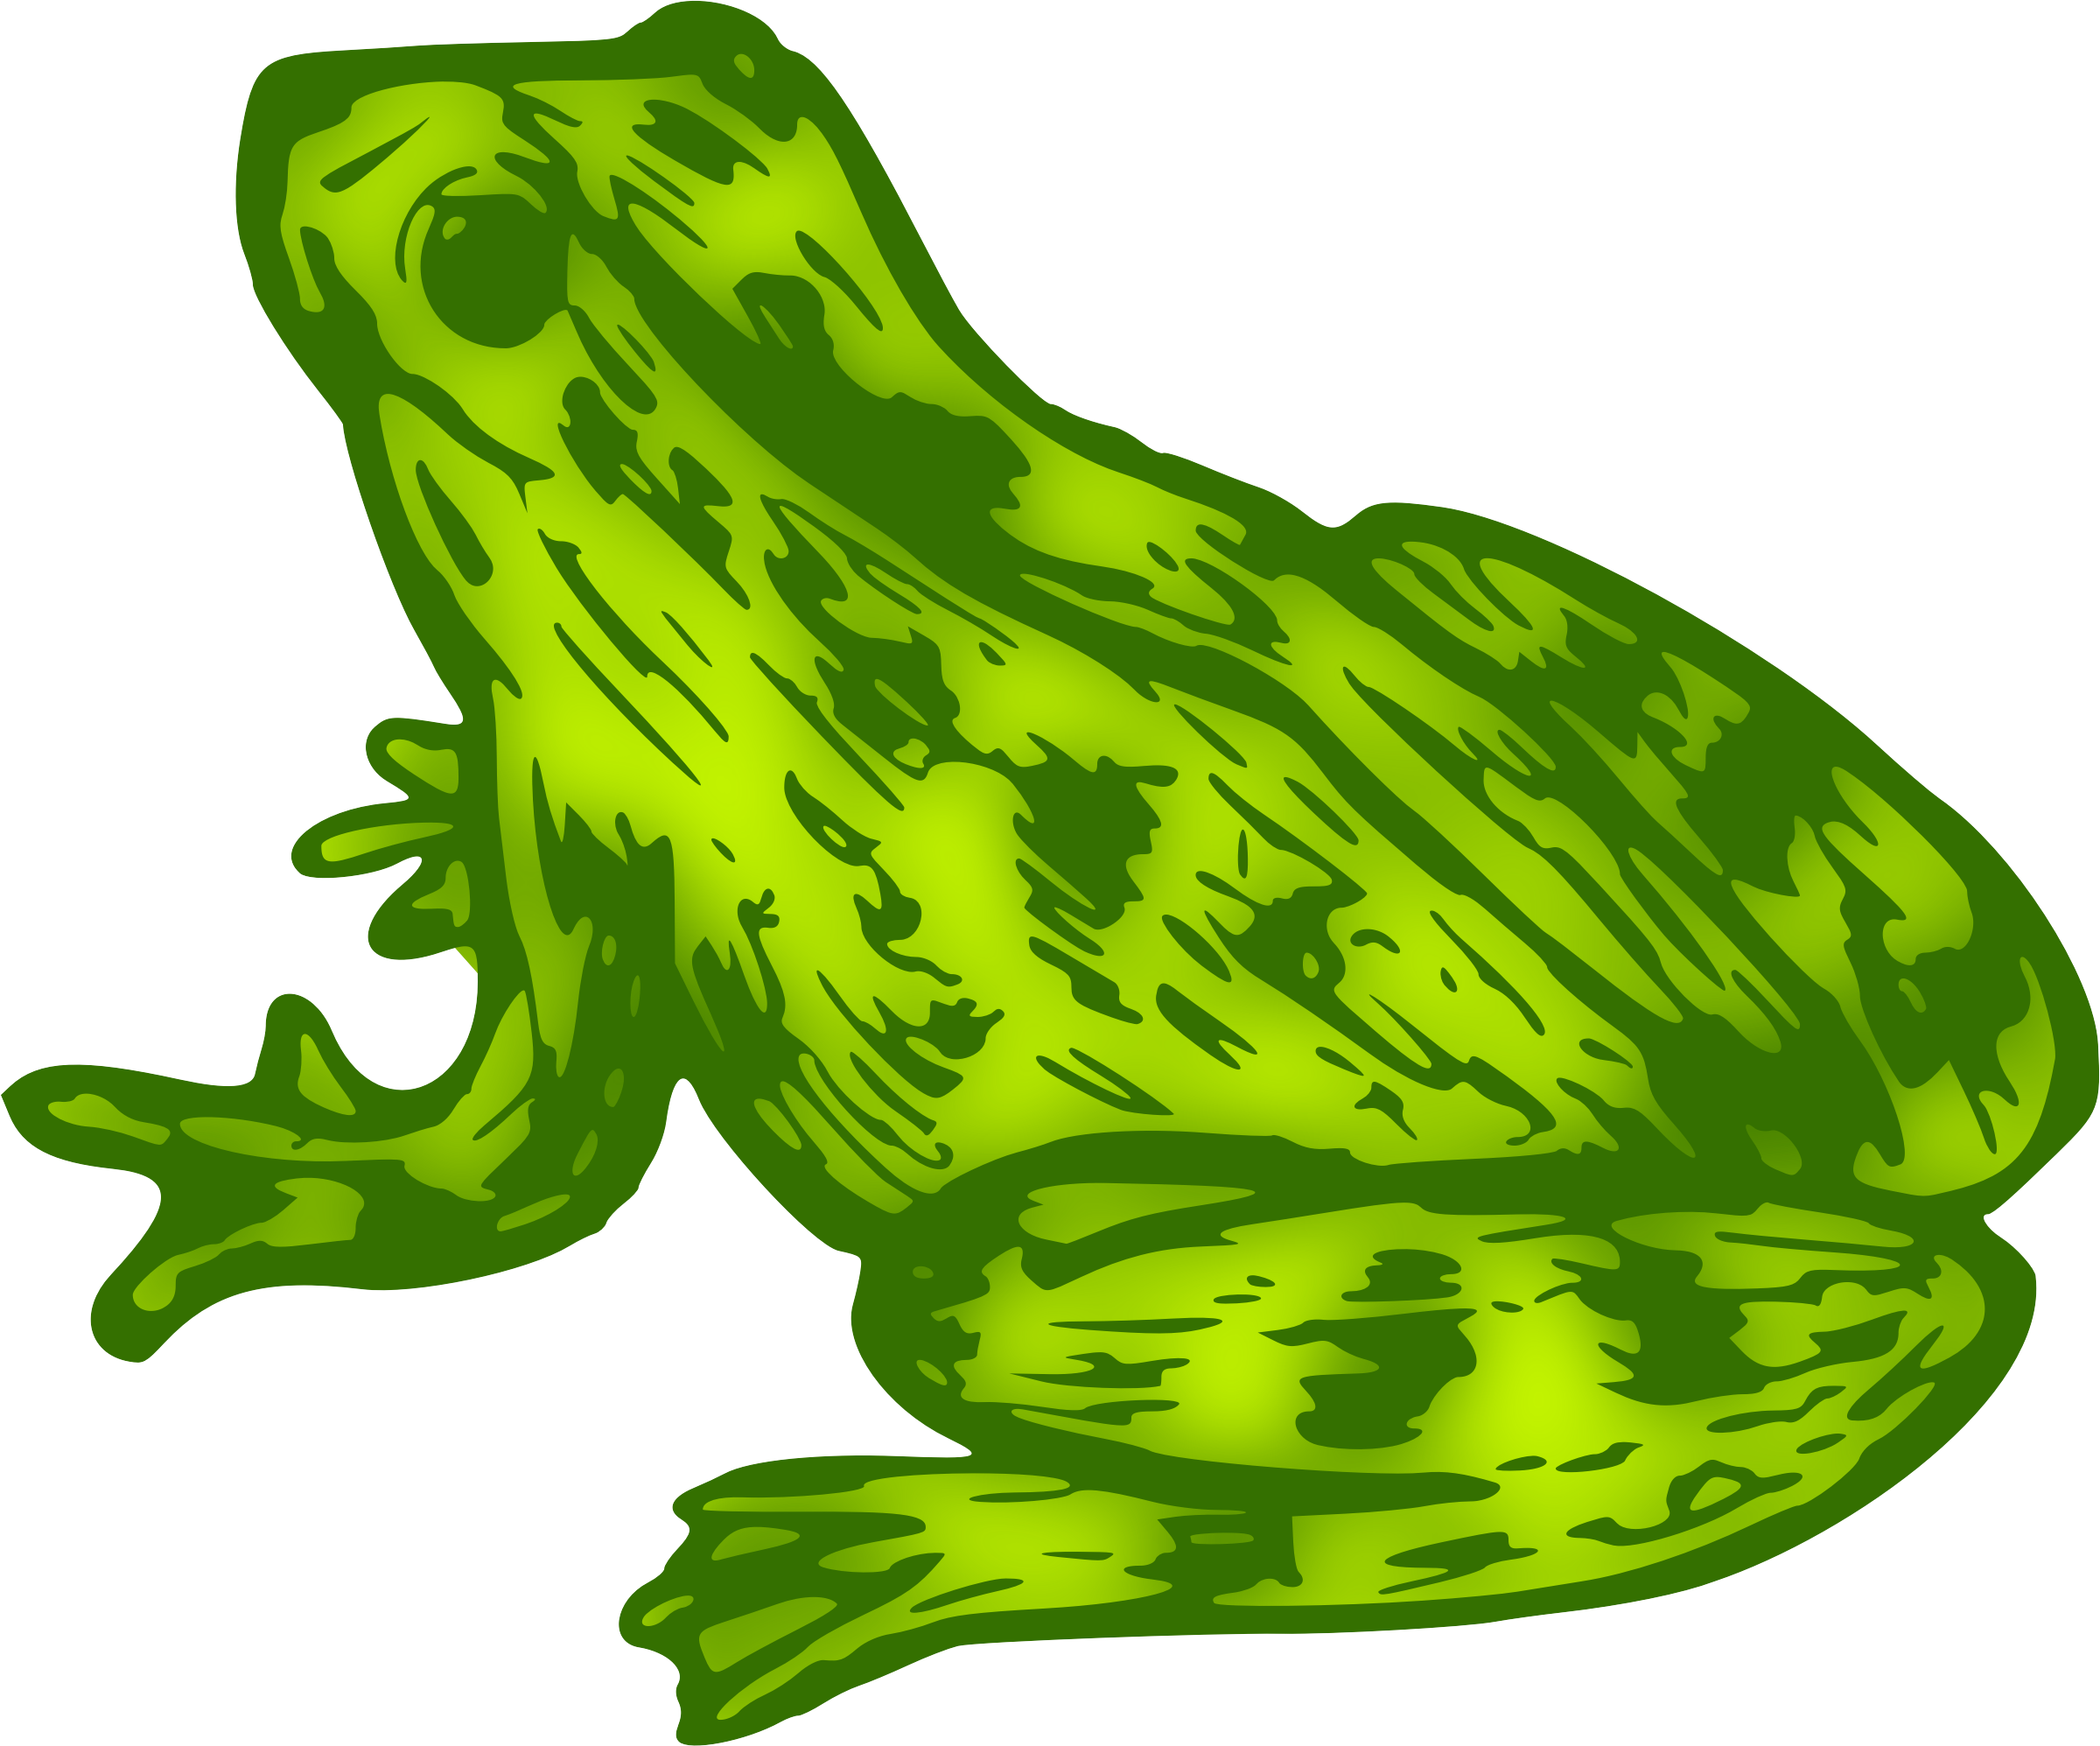 Clipart frog toad. Colour big image png